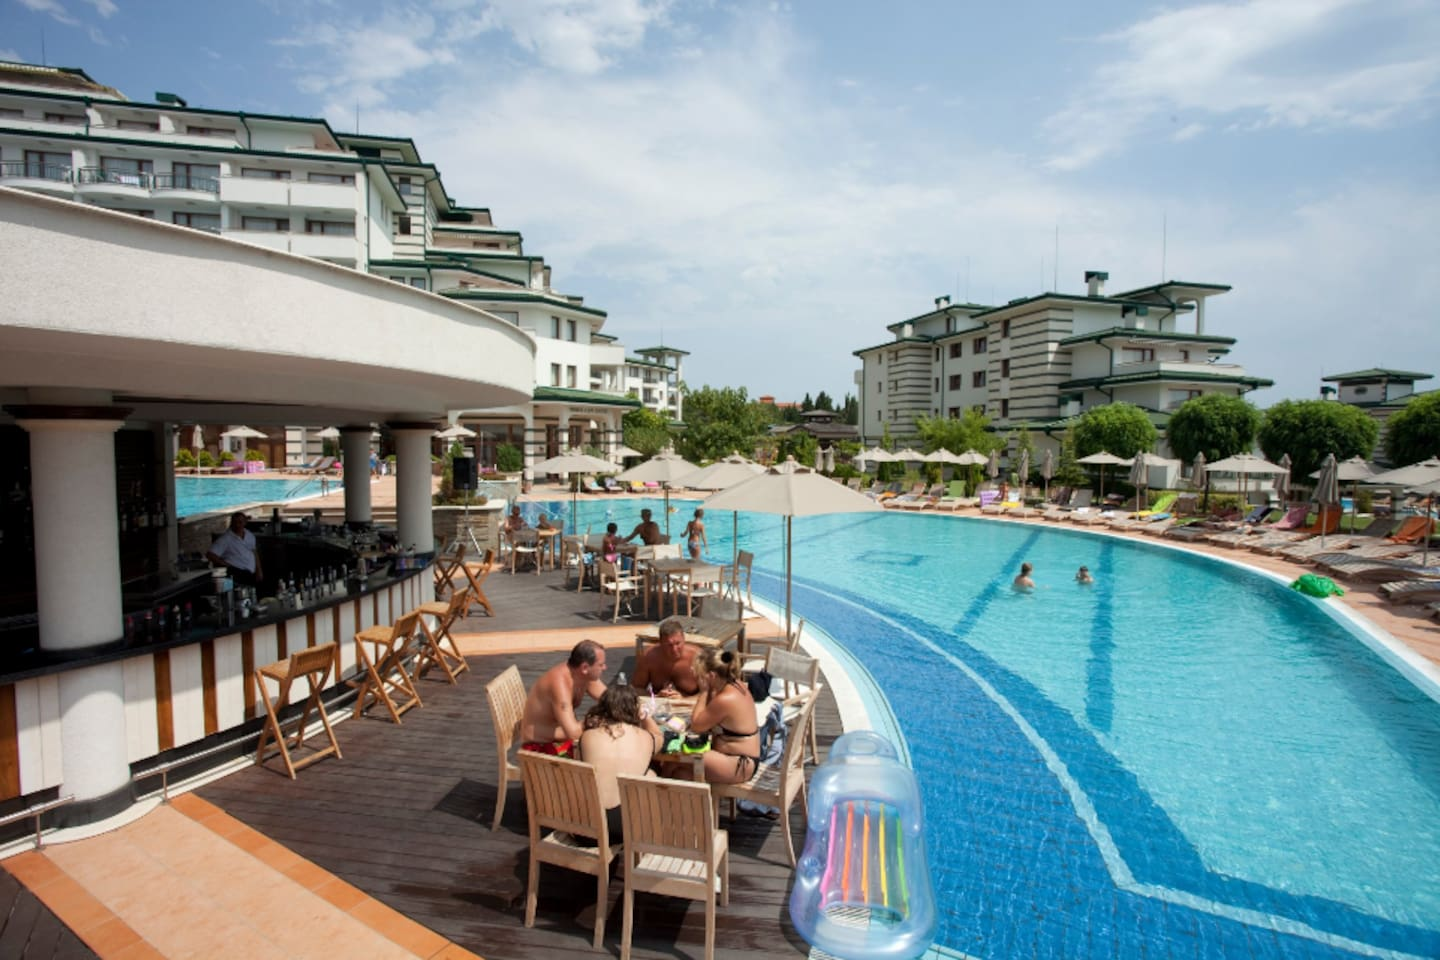 The main pool and the bar